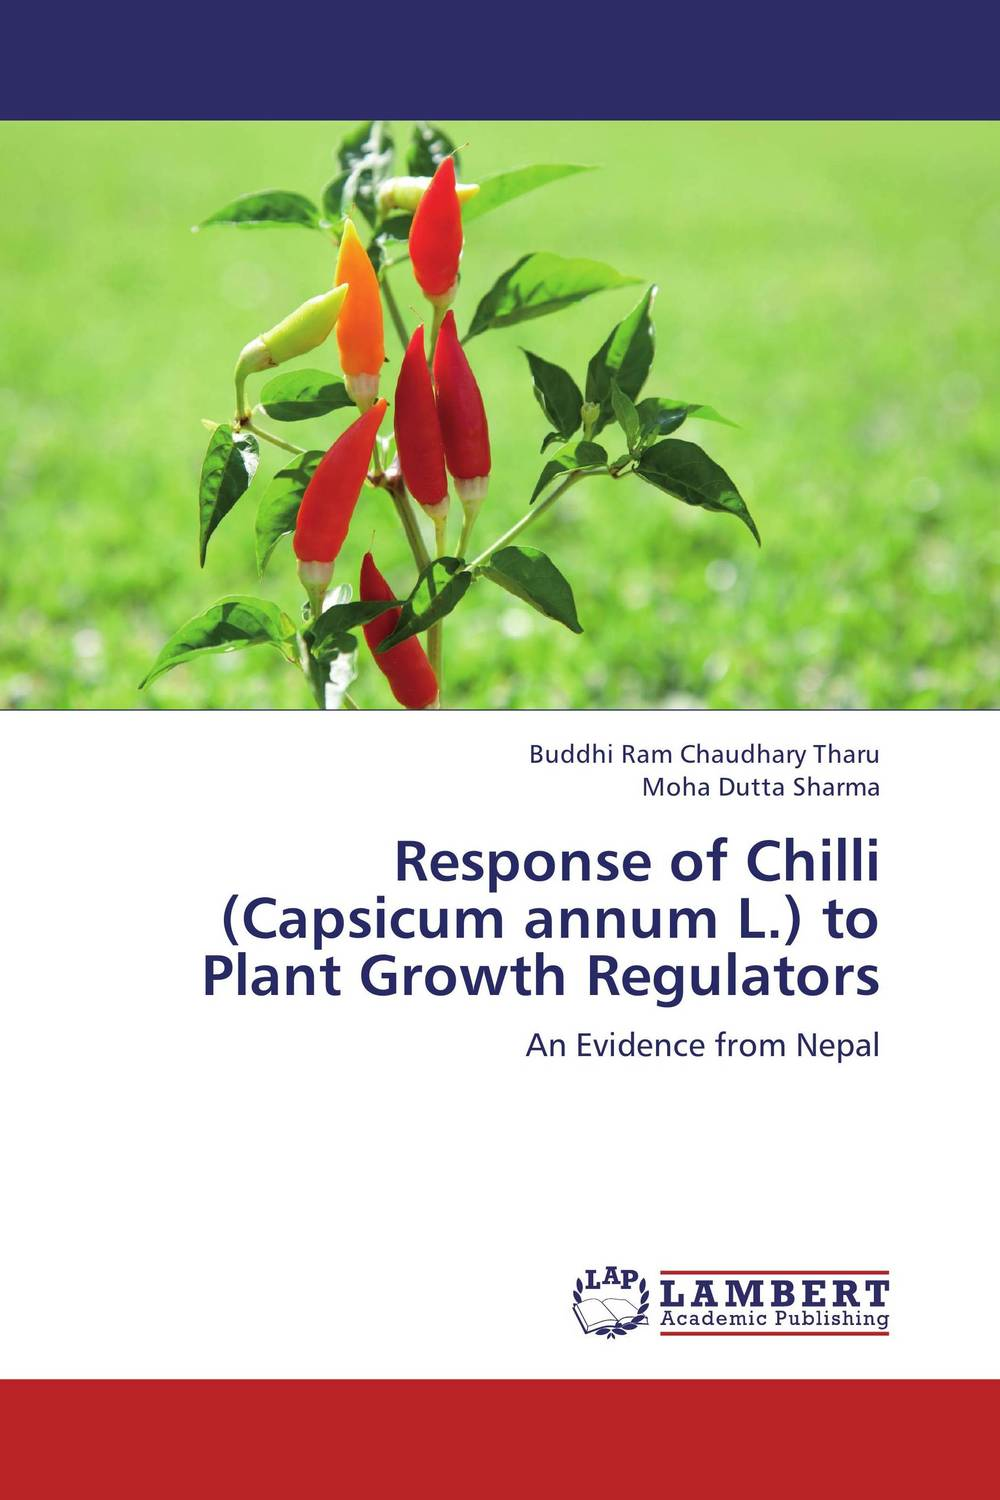 Response of Chilli (Capsicum annum L.) to Plant Growth Regulators rizabina women spike heel ankle boots woman pointed toe high heel ladies gladiator tassel ankle strap botas mujer size 34 47